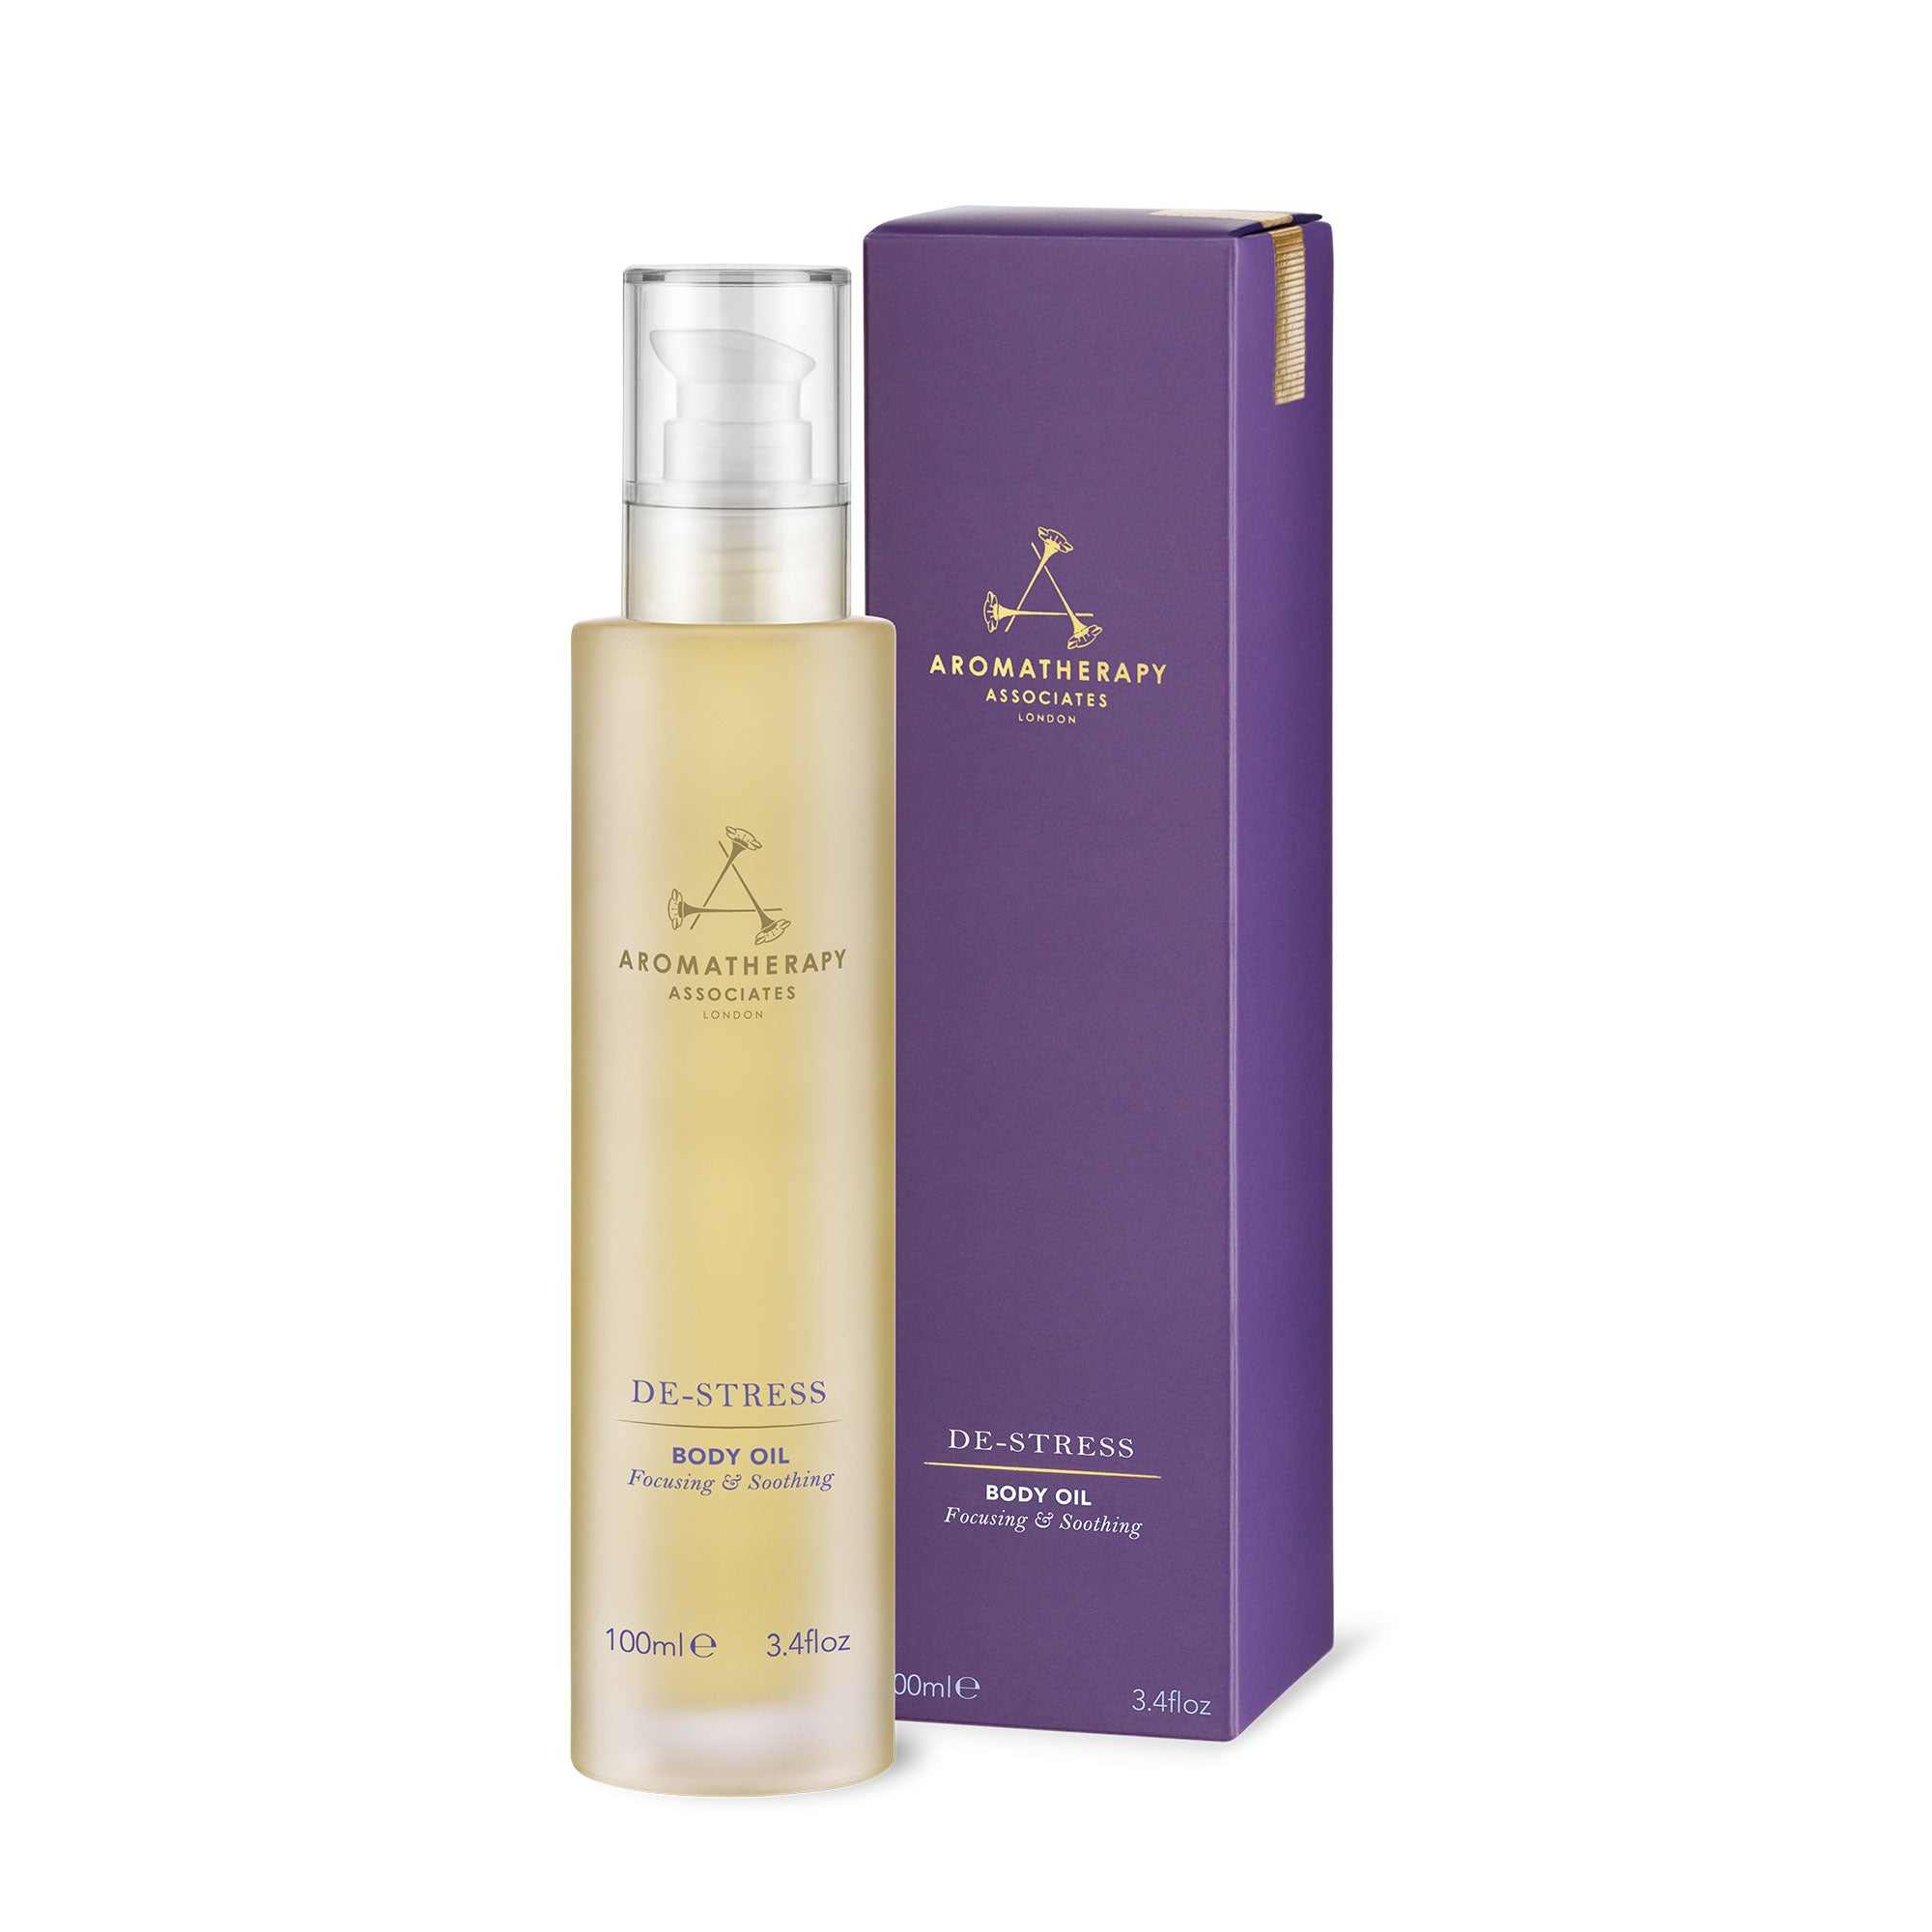 Aromatherapy Associates De-Stress Body Oil